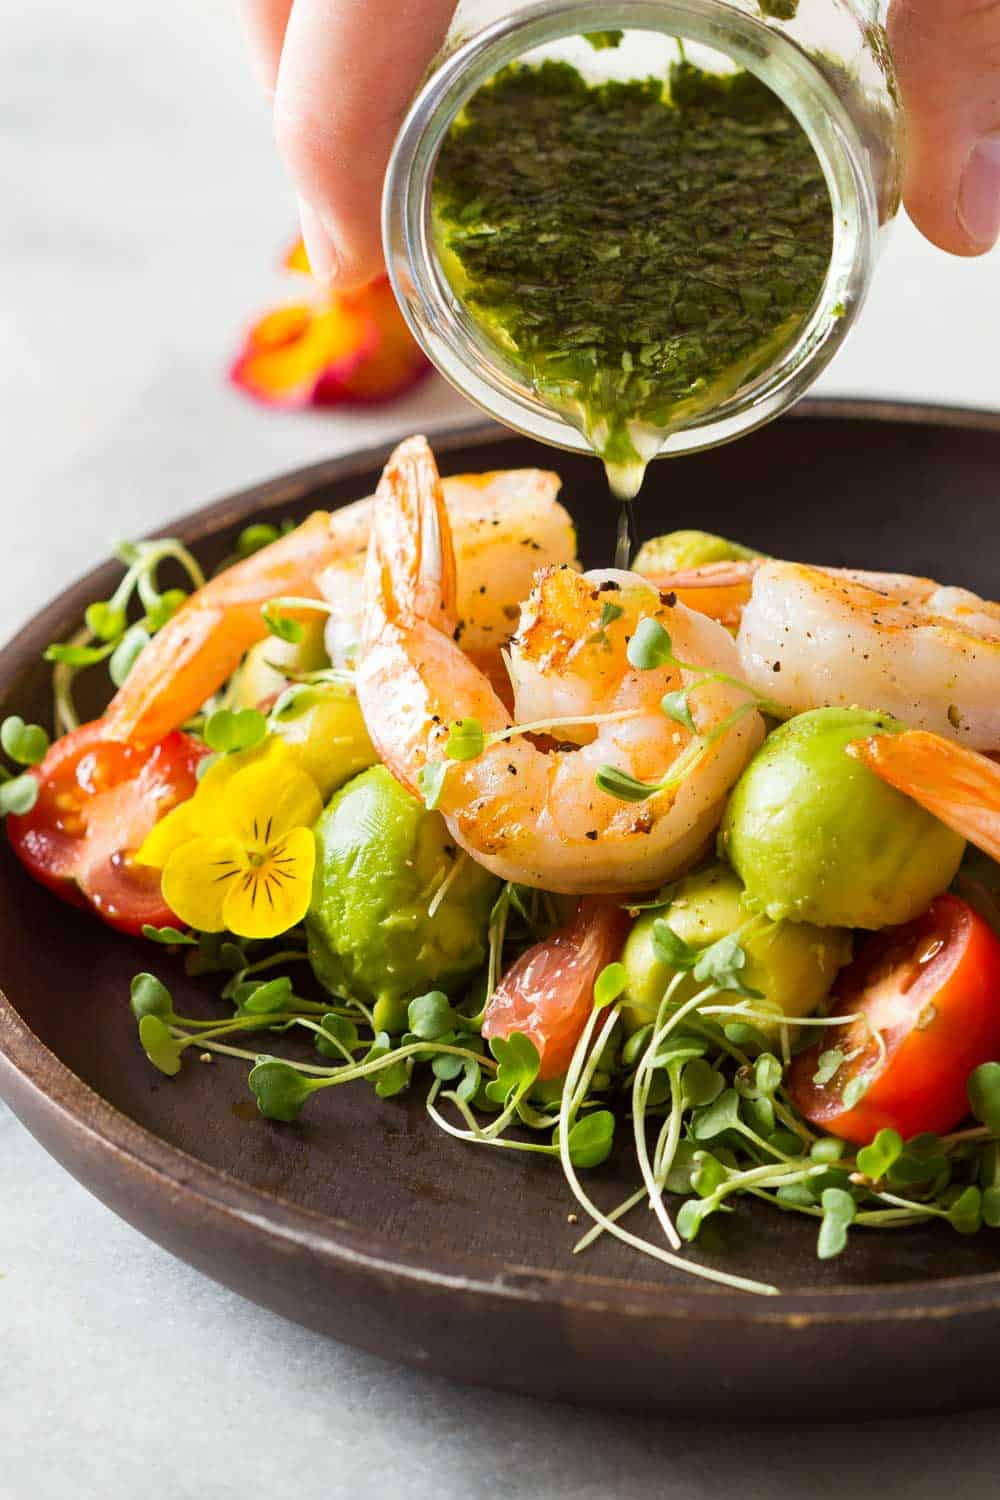 Shrimp, avocado, tomato, arugula and grapefruit on a plate with cilantro dressing being poured on it.